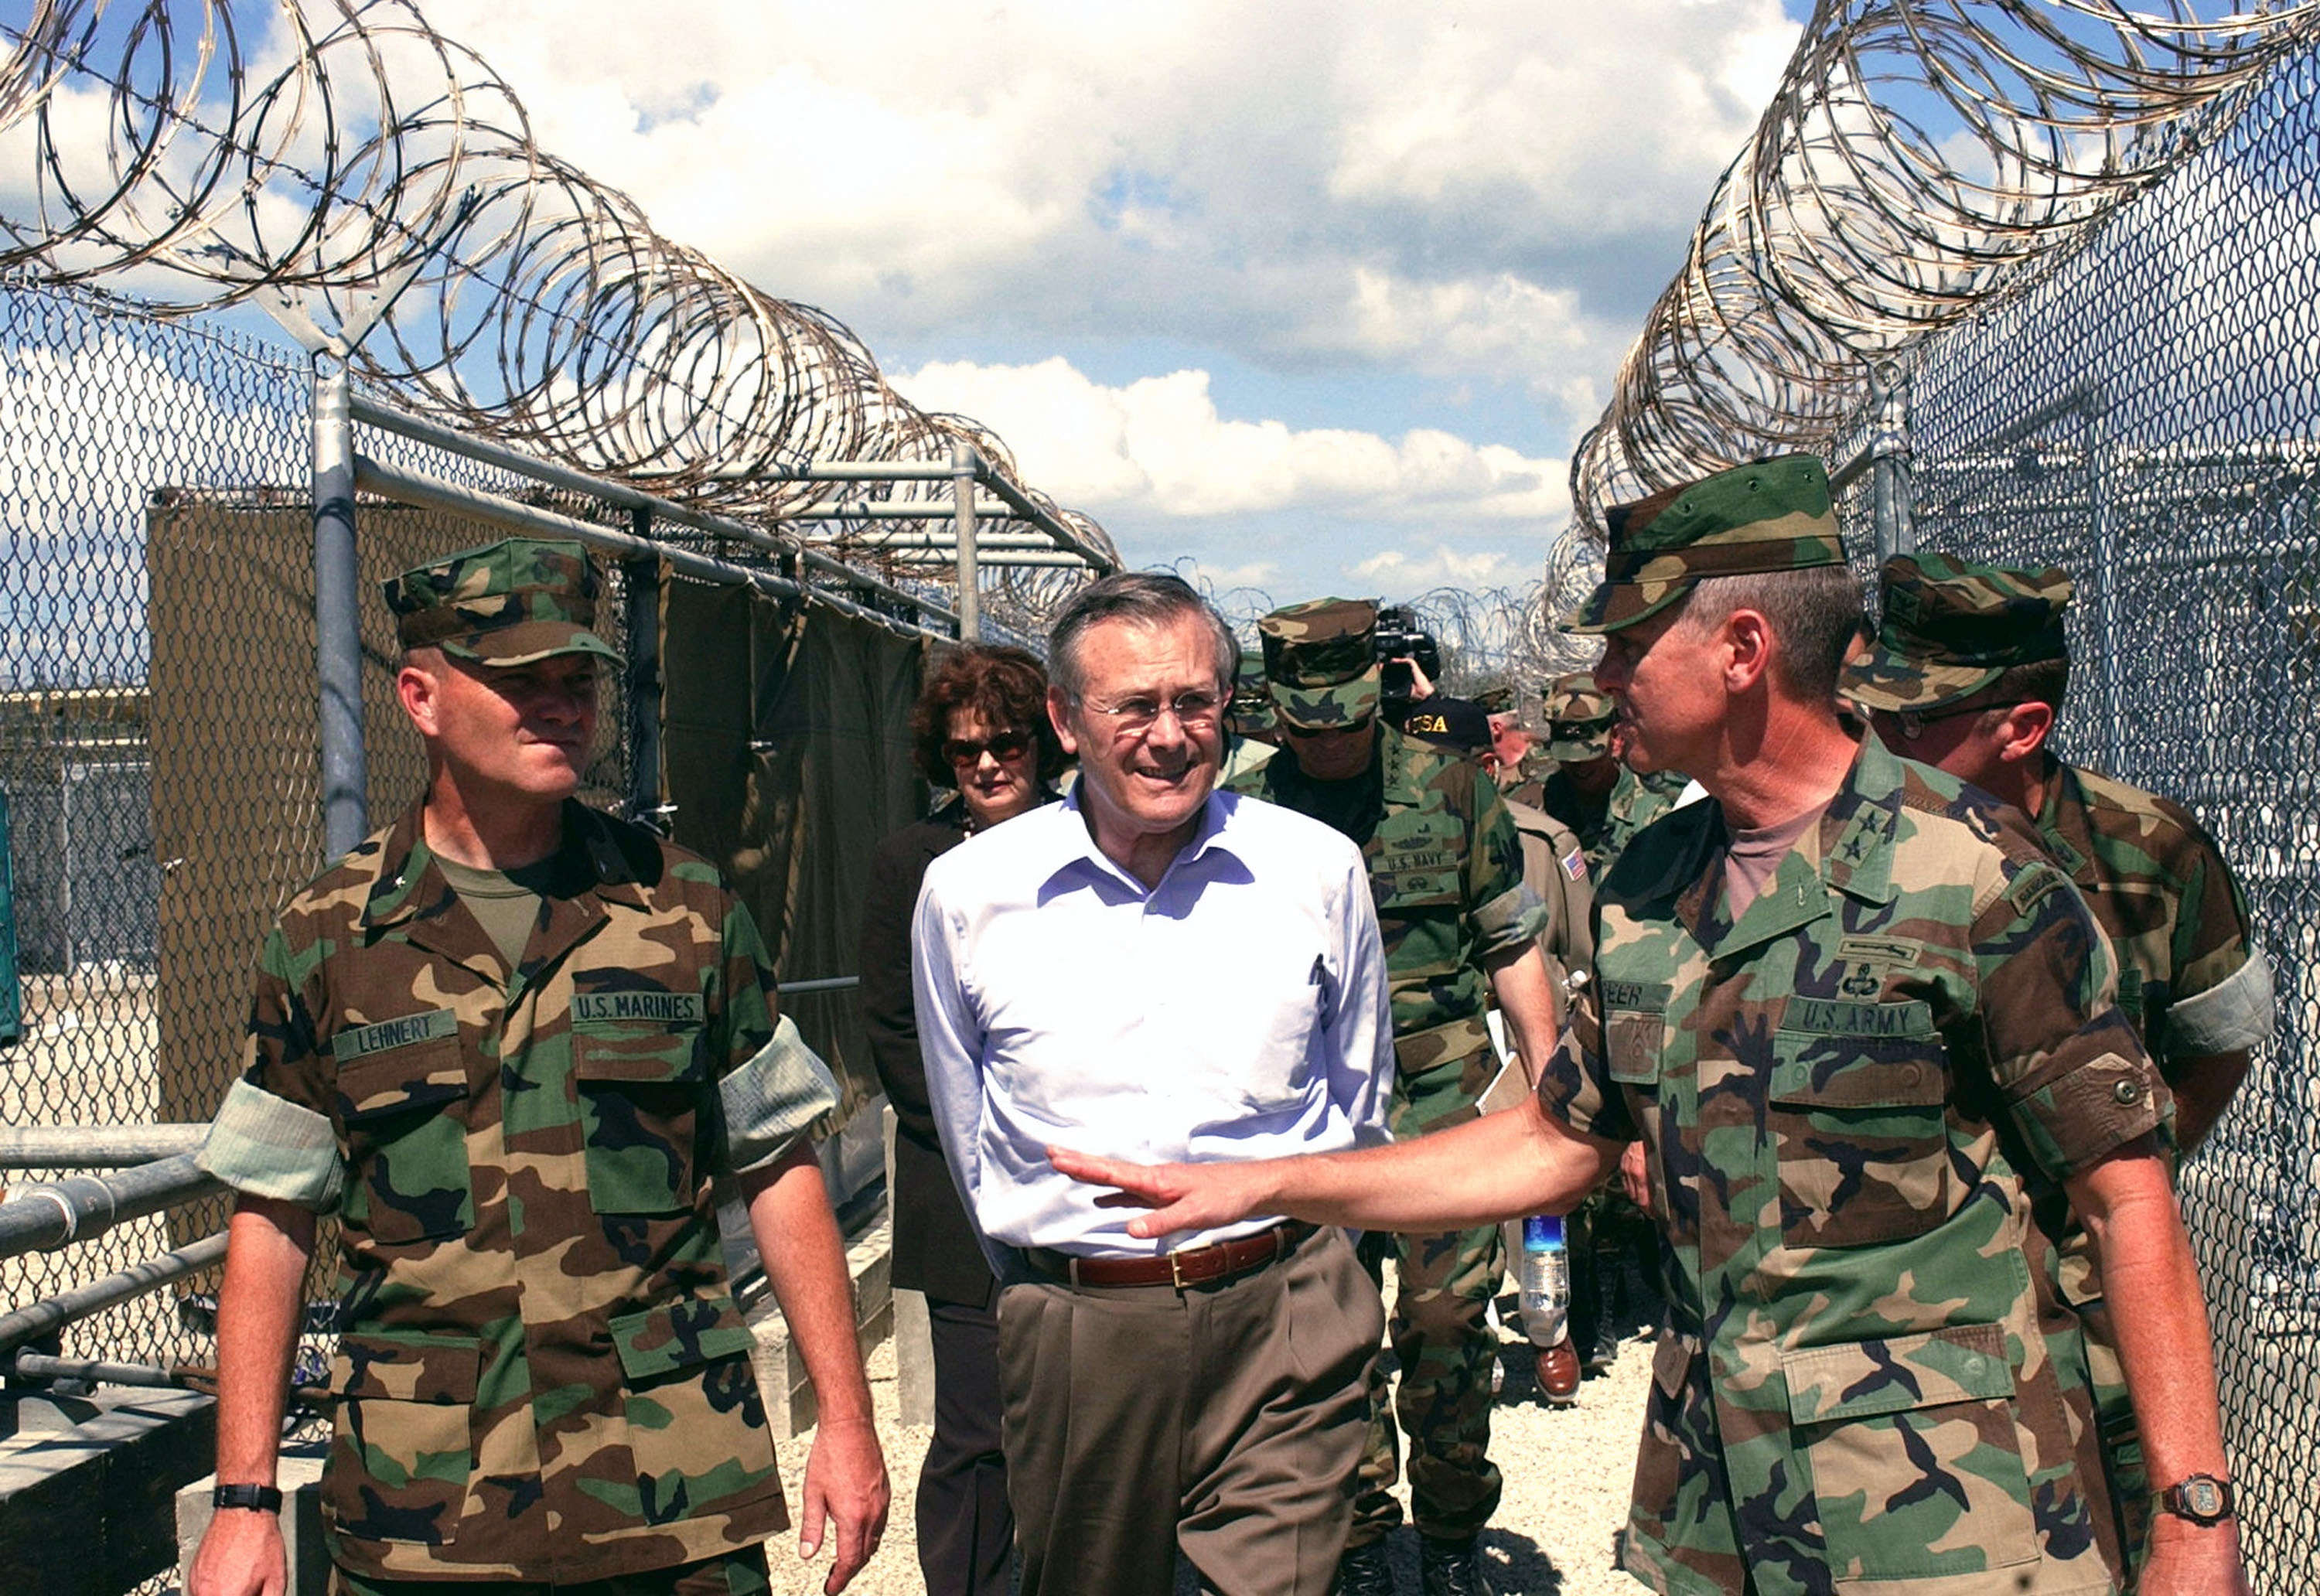 400243 01: U.S. Secretary of Defense Donald H. Rumsfeld (C) is greeted by BGen. Michael R. Lehnert, Joint Task Force-160 Commander (L) and MGen. Gary D. Speer, Assistant Commander in Chief, U.S. Southern Command (R) on a visit to Camp X-Ray January 27, 2002 at U.S. Naval Base Guantanamo Bay, Cuba. Rumsfeld said that the Taliban and al Qaeda prisoners being held at the base would not be given prisoner-of-war status. (Photo by Joshua S. Higgins/USMC/Getty Images)